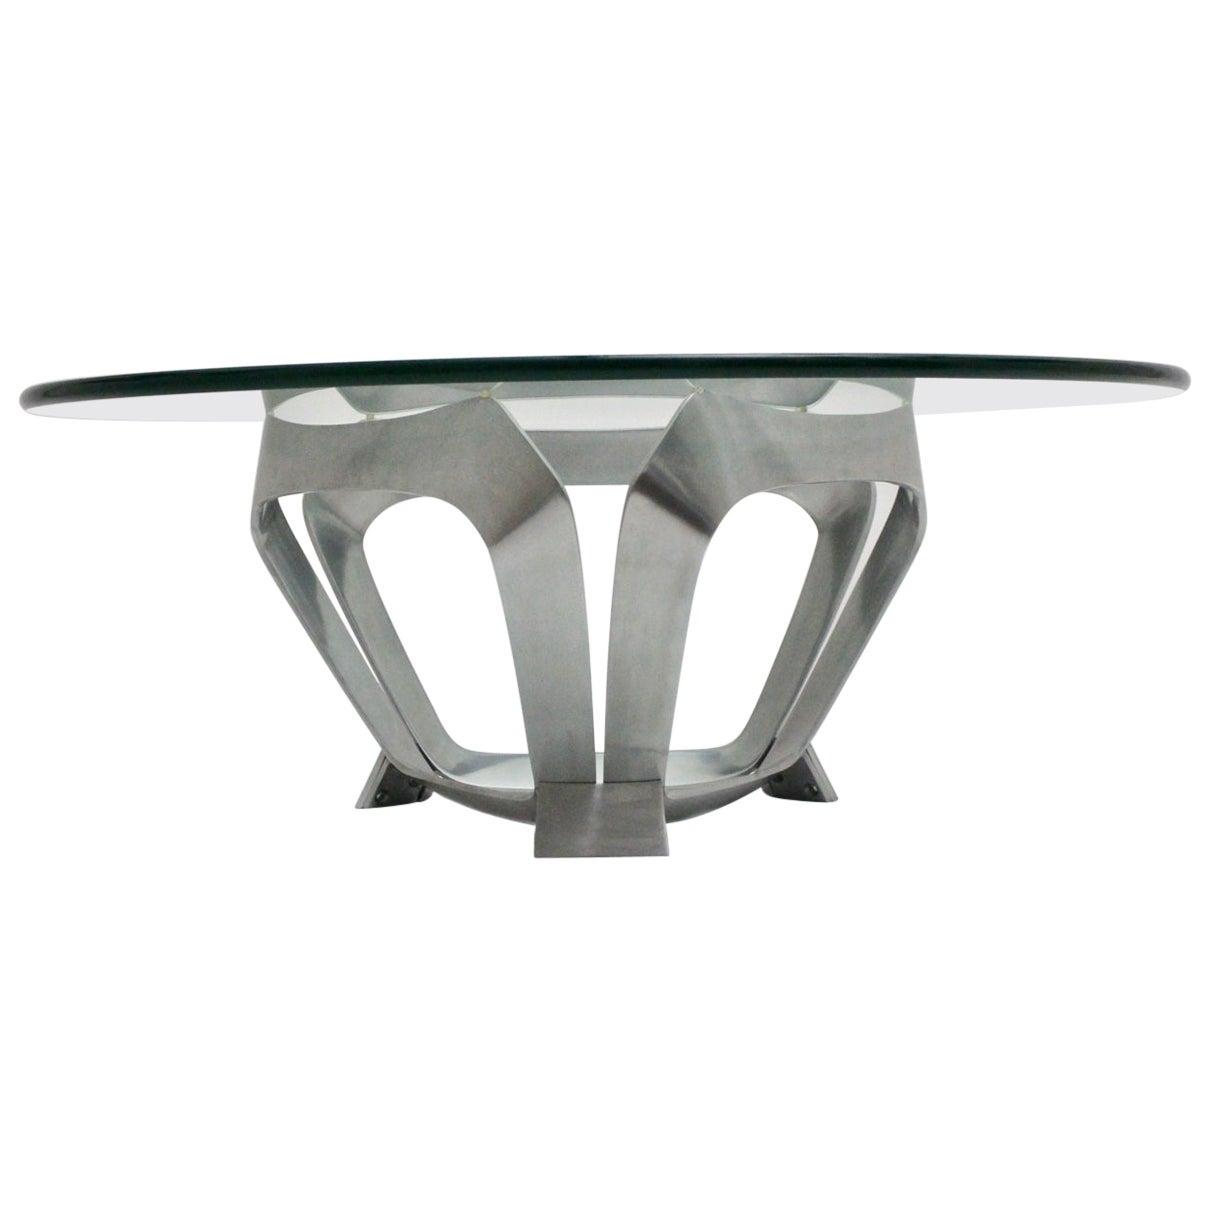 Mid-Century Modern Vintage Aluminum Coffee Table Knut Hesterberg, 1960s, Germany